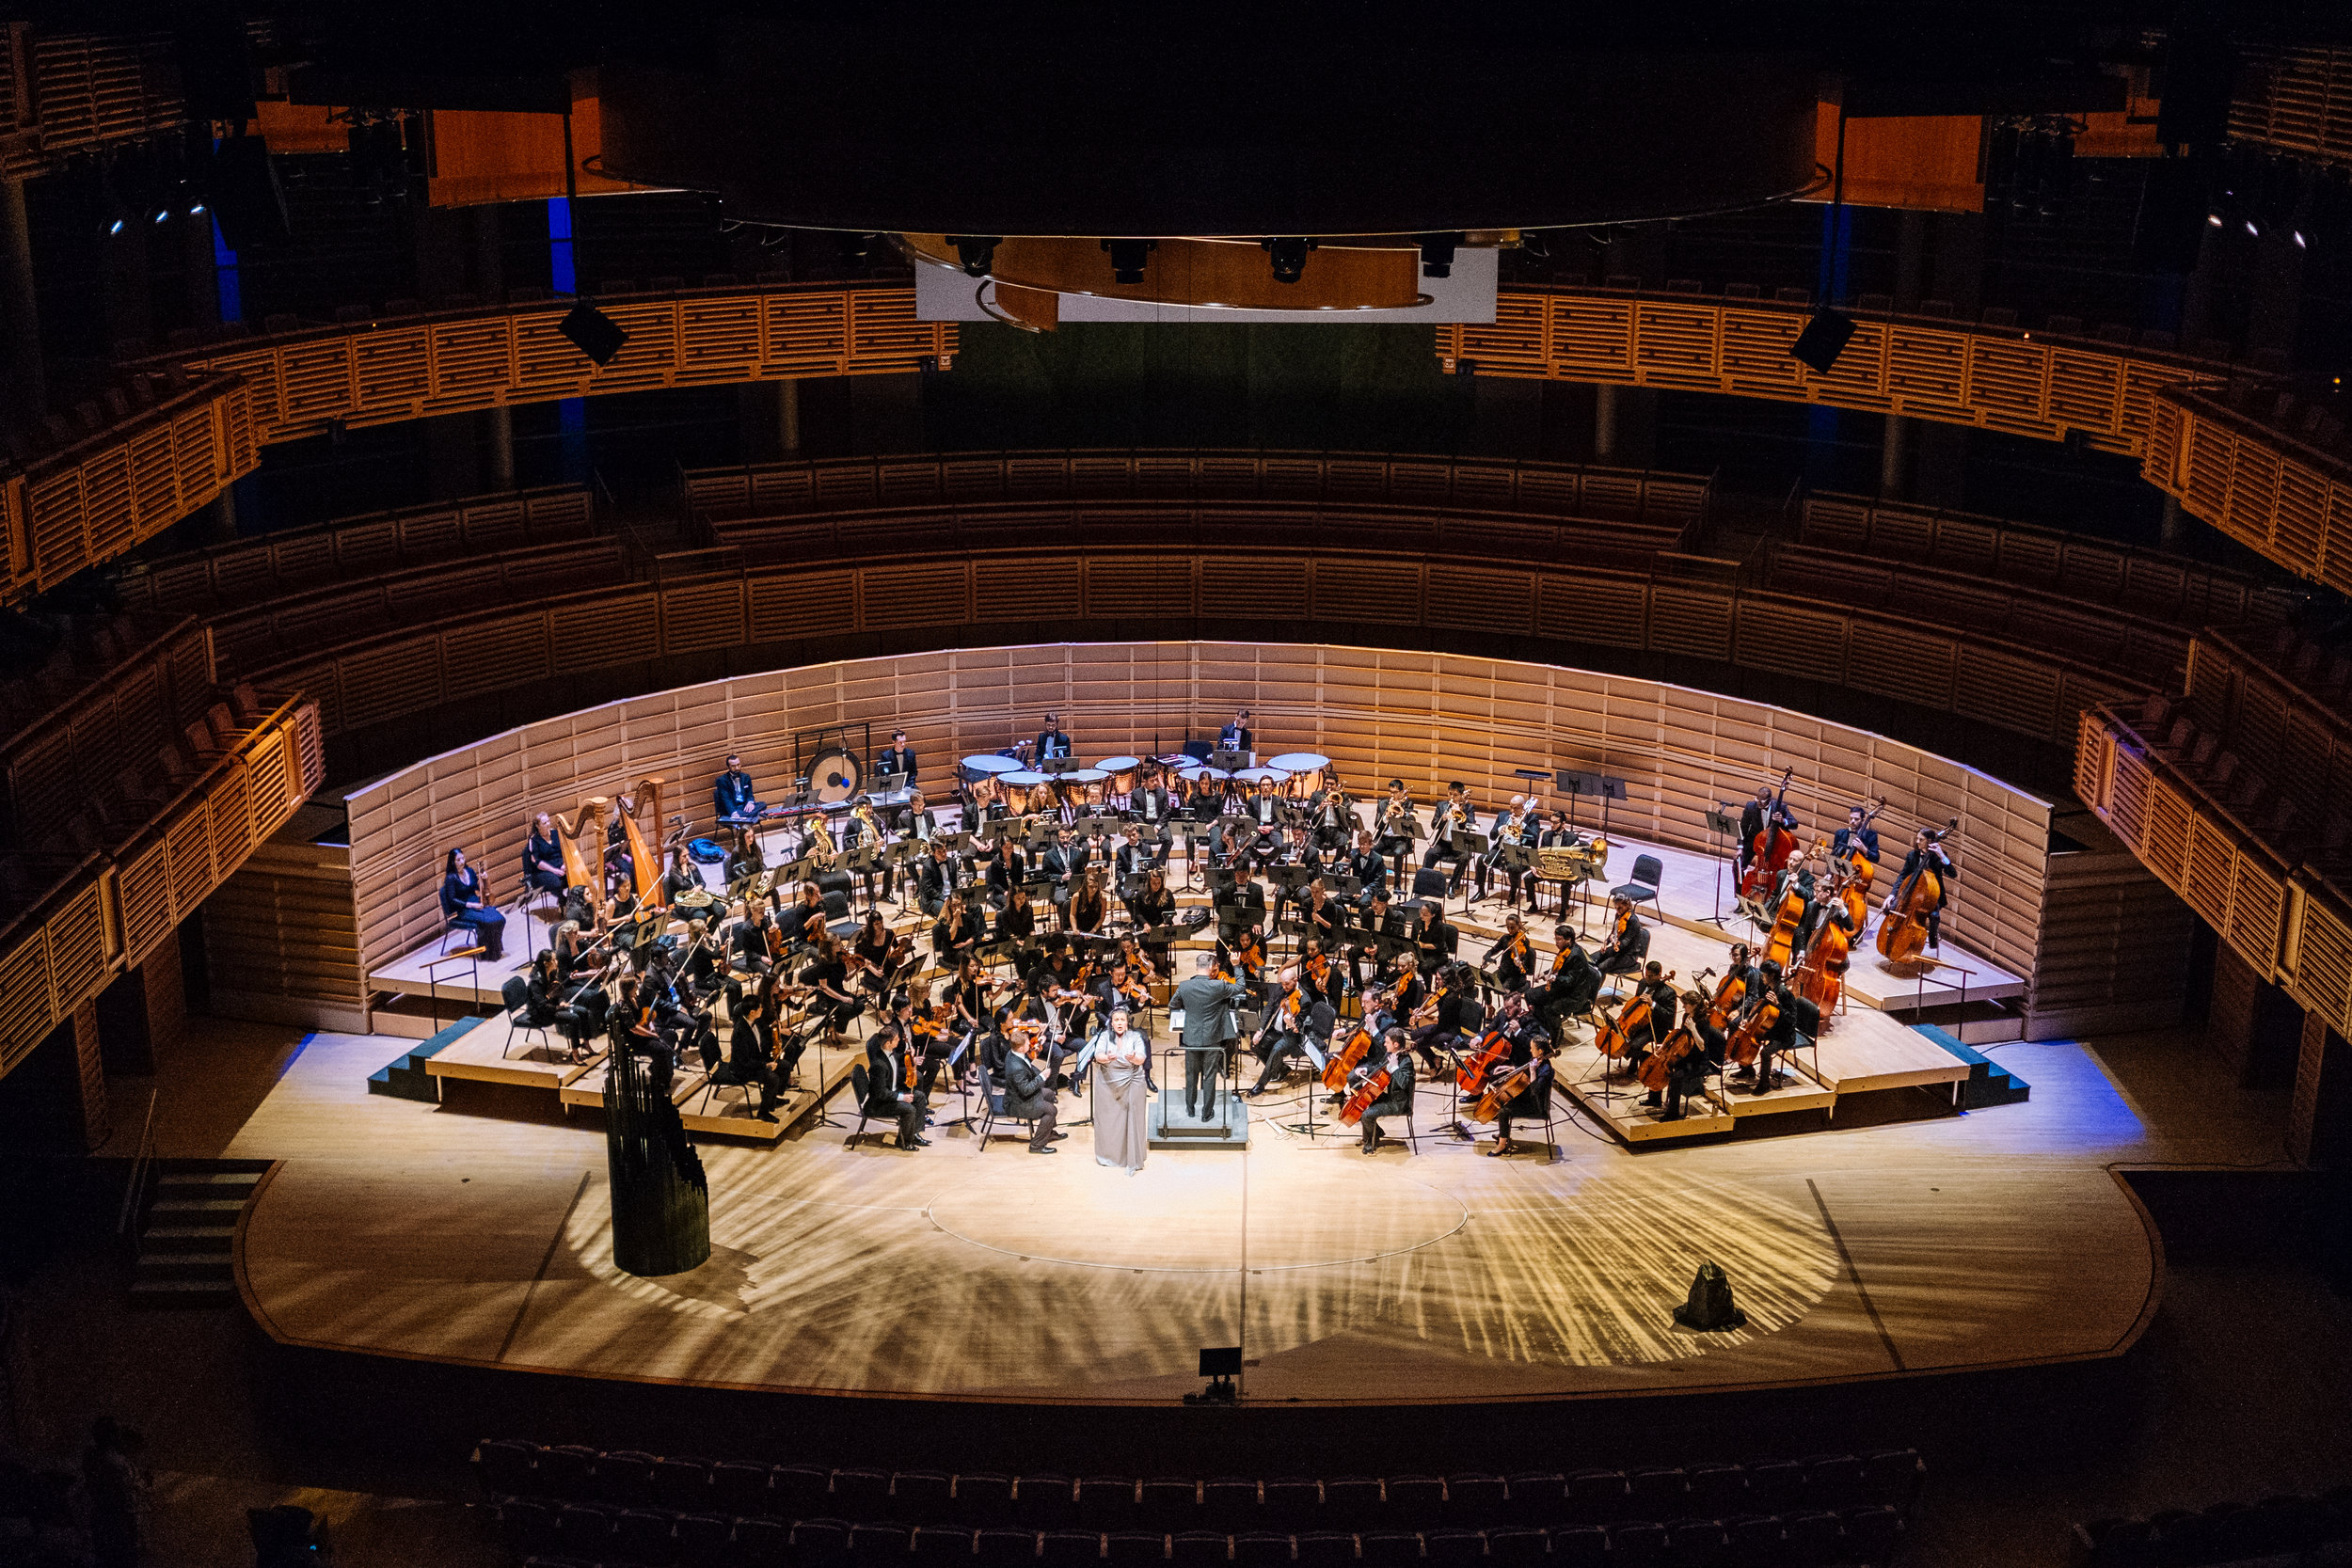 Knight Concert Hall, Arsht Center for the Performing Arts, Miami, FL